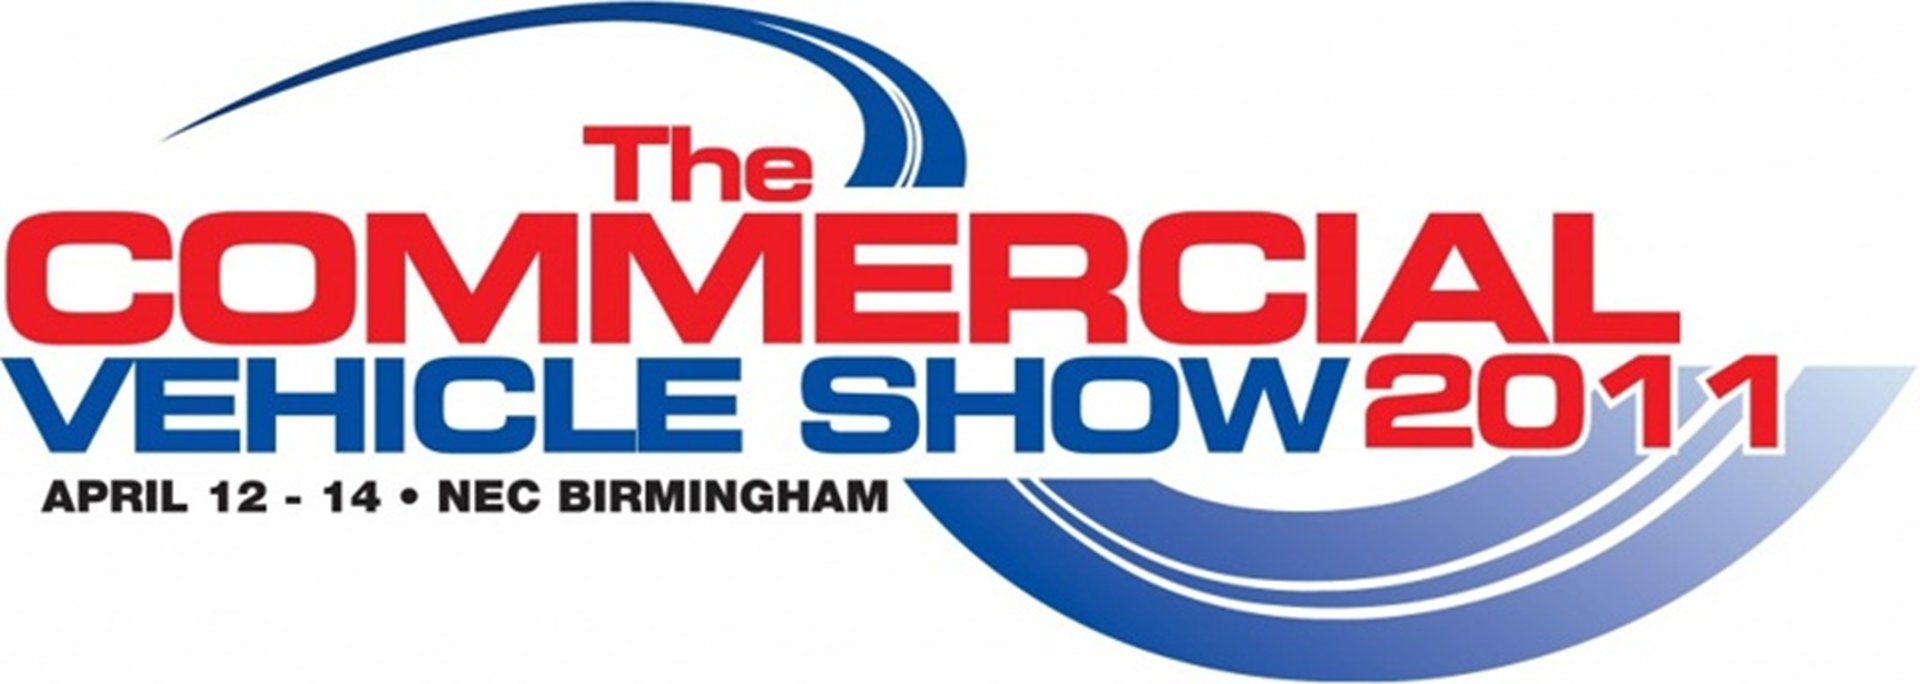 Commercial Vehicle Show 2012